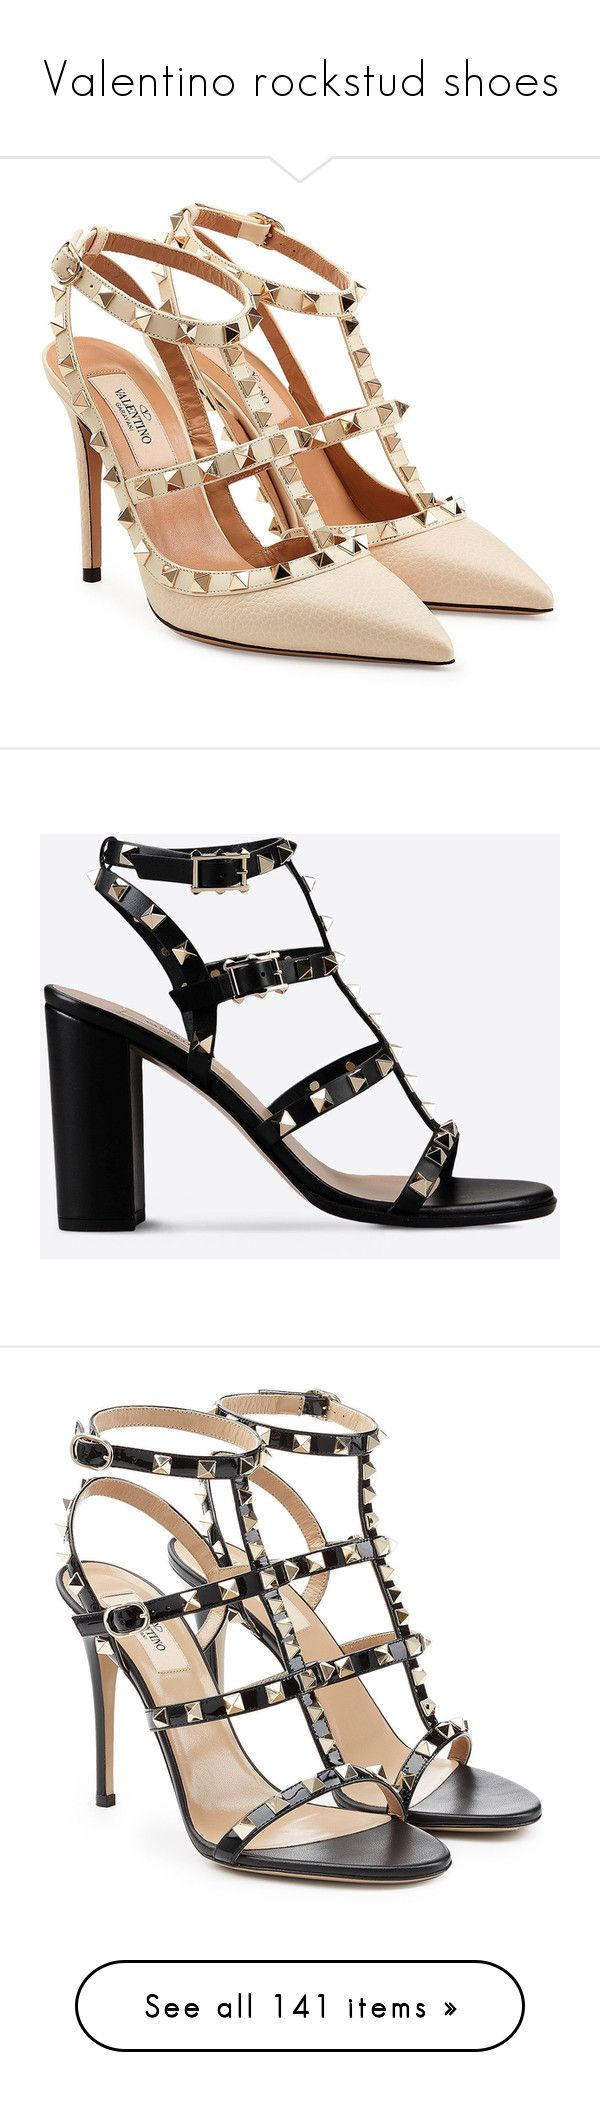 """Valentino rockstud shoes"" by huntress-383 ❤ liked on Polyvore featuring shoes, pumps, heels, valentino, beige, valentino pumps, beige leather pumps, leather shoes, leather footwear and real leather shoes"